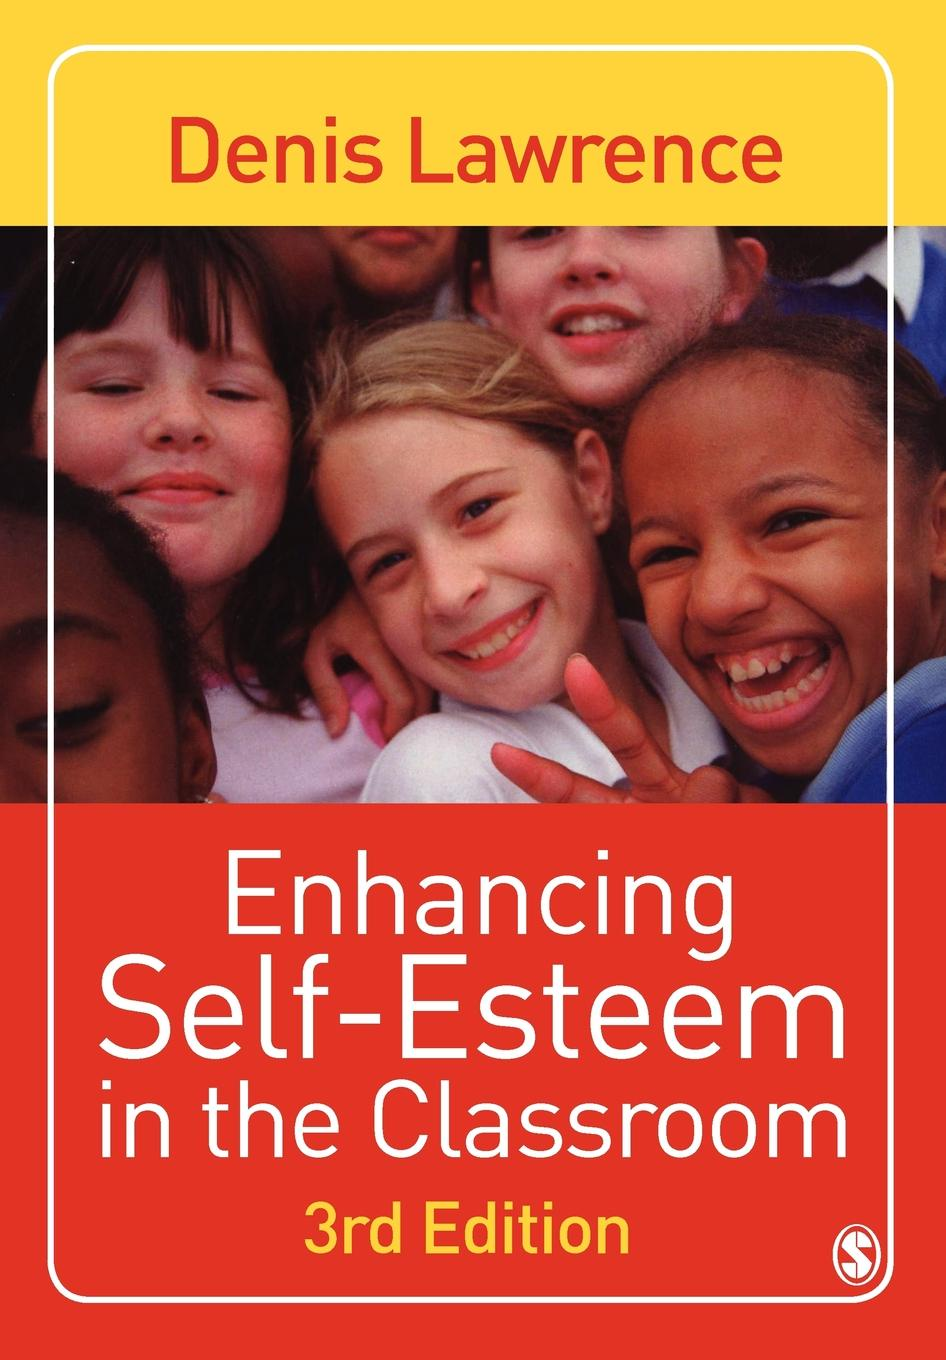 Denis Lawrence Enhancing Self-Esteem in the Classroom denis lawrence middlesbrough man part two the middle years